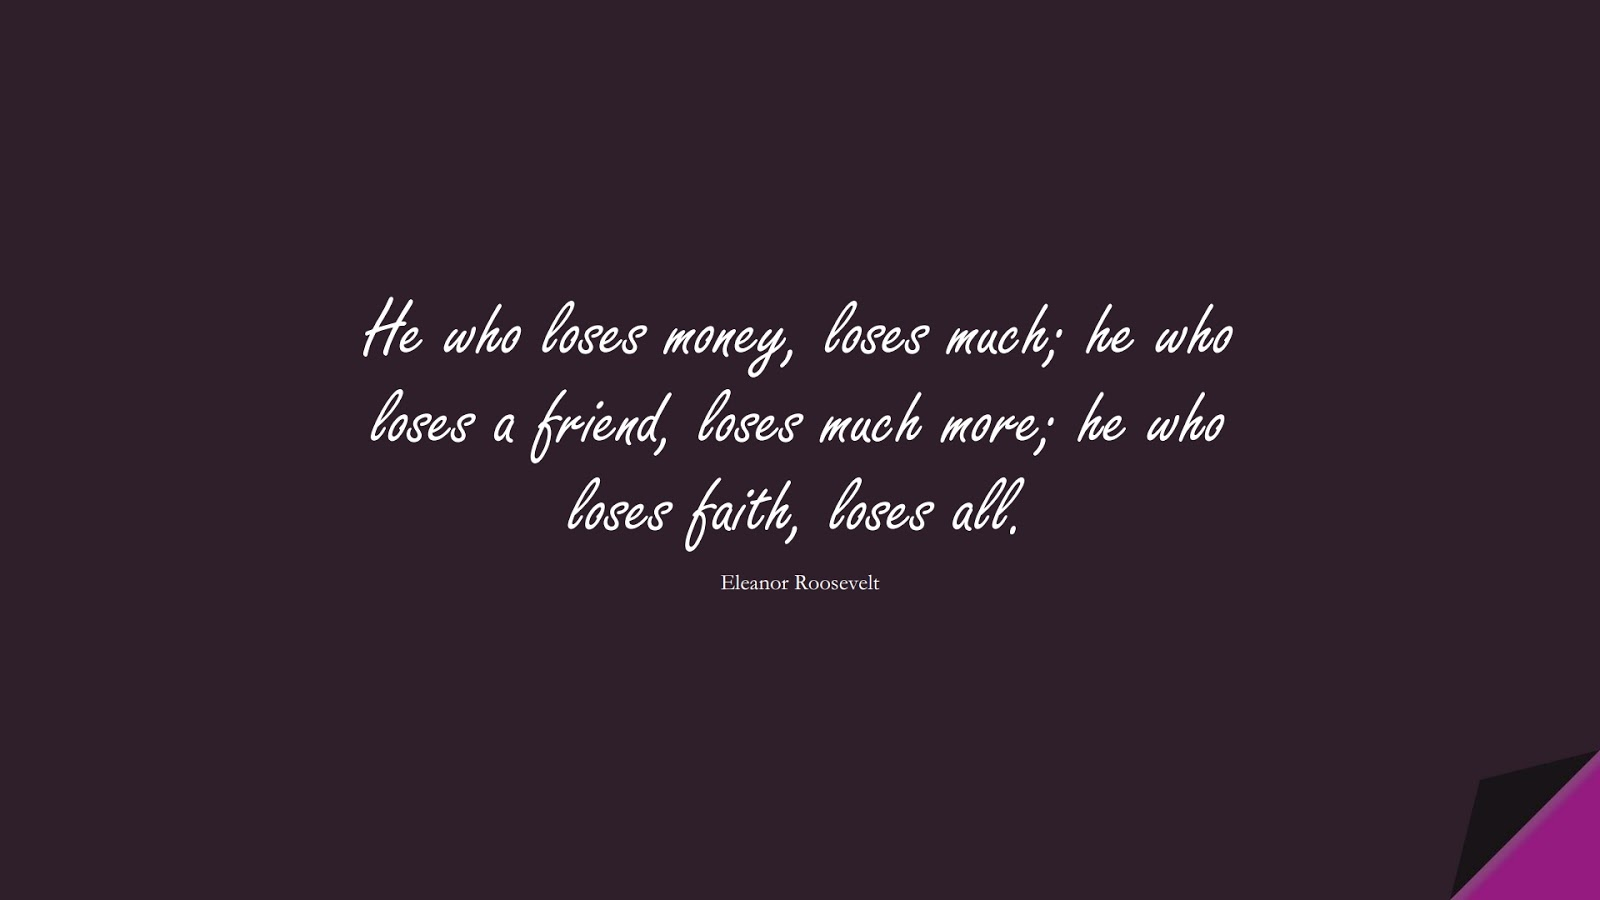 He who loses money, loses much; he who loses a friend, loses much more; he who loses faith, loses all. (Eleanor Roosevelt);  #WordsofWisdom